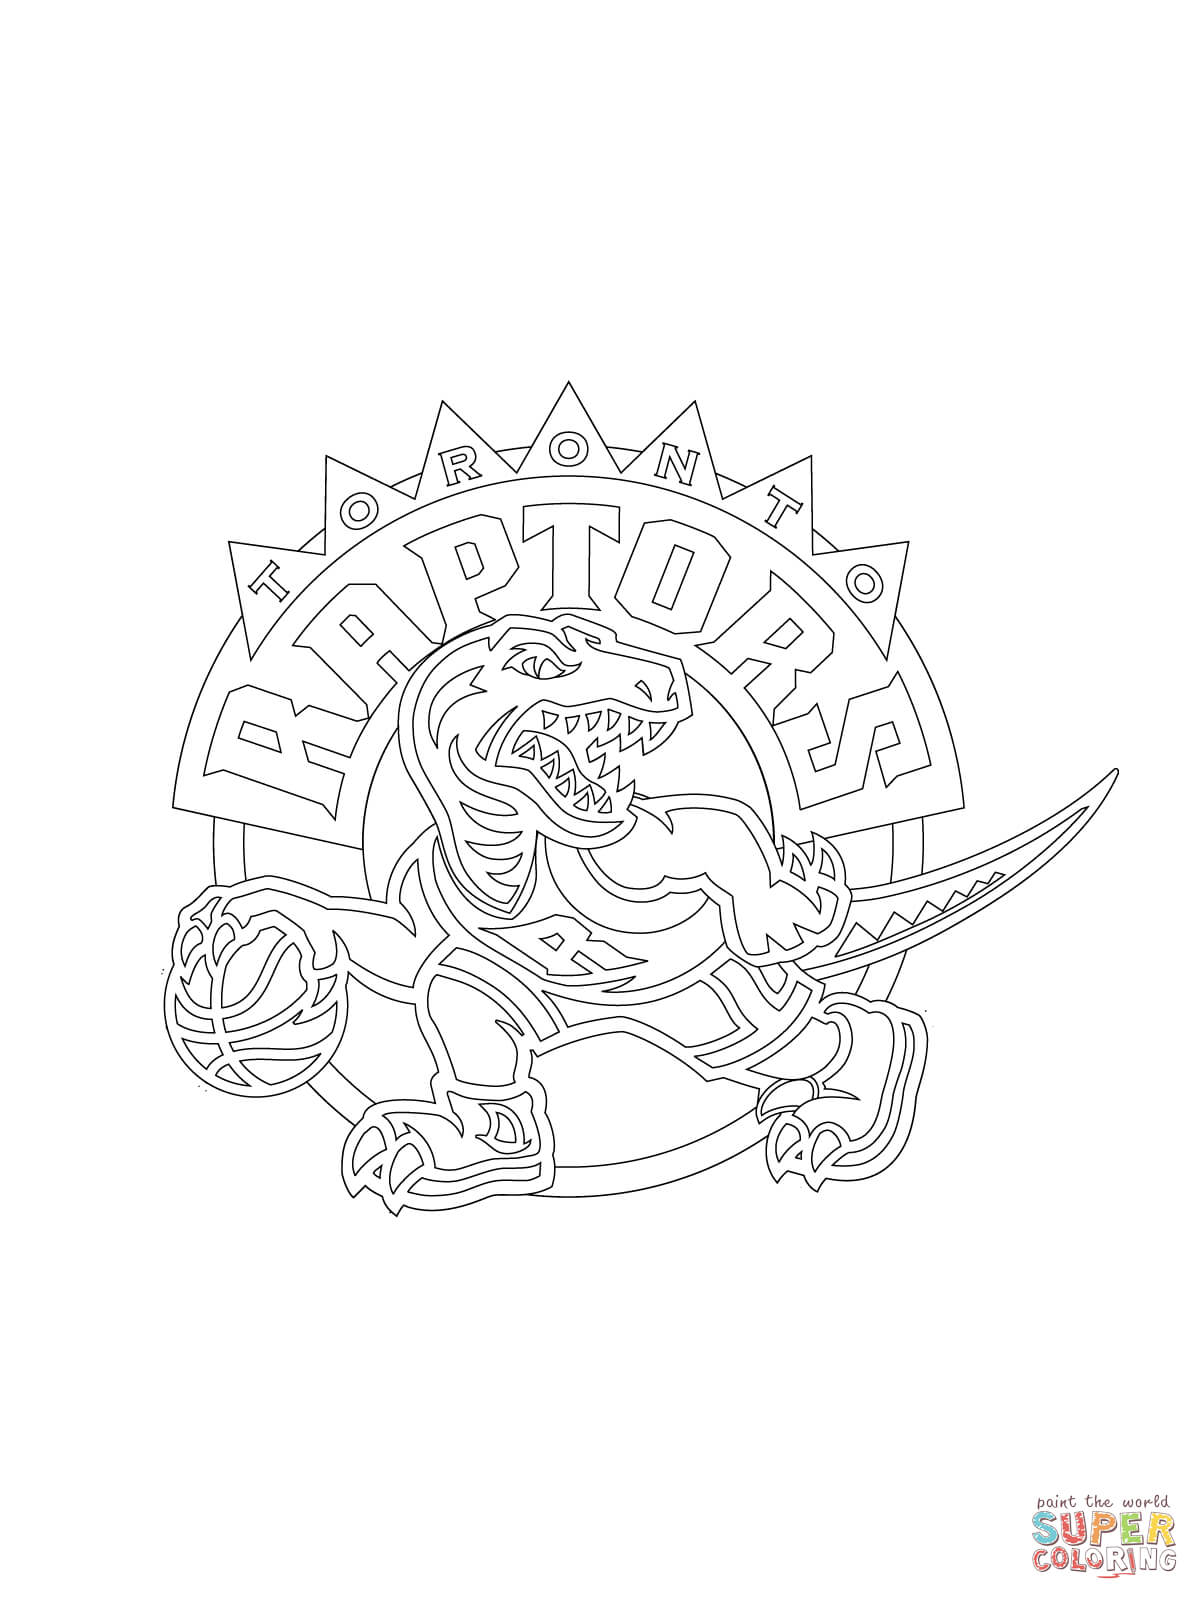 Raptor coloring pages download